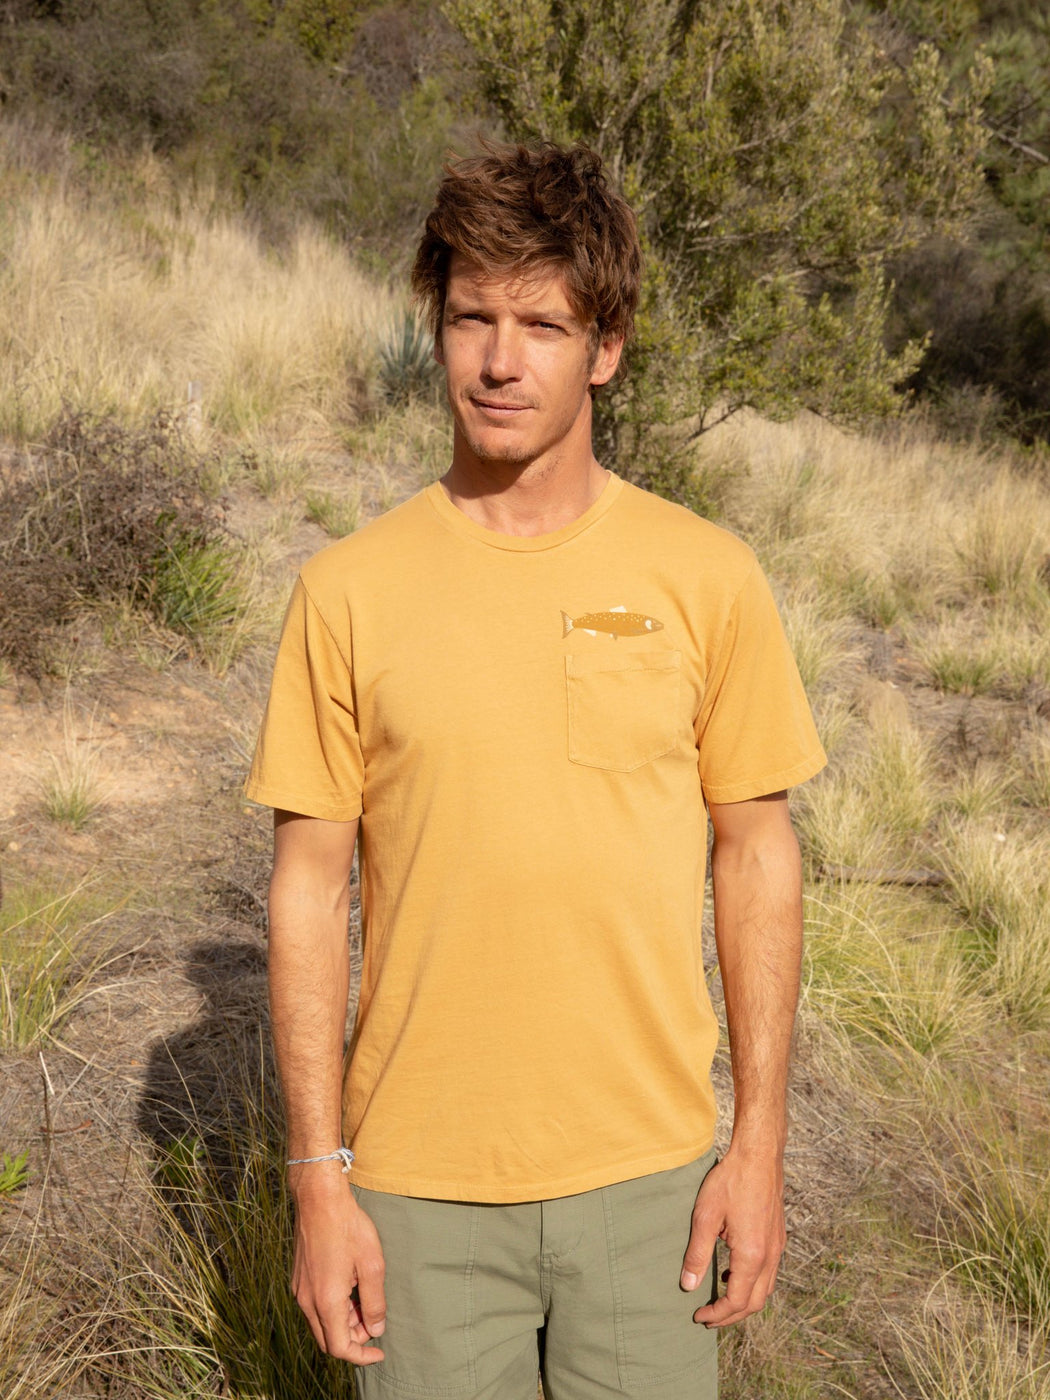 Mollusk Hot Salmon Tee inSun Shine Yellow